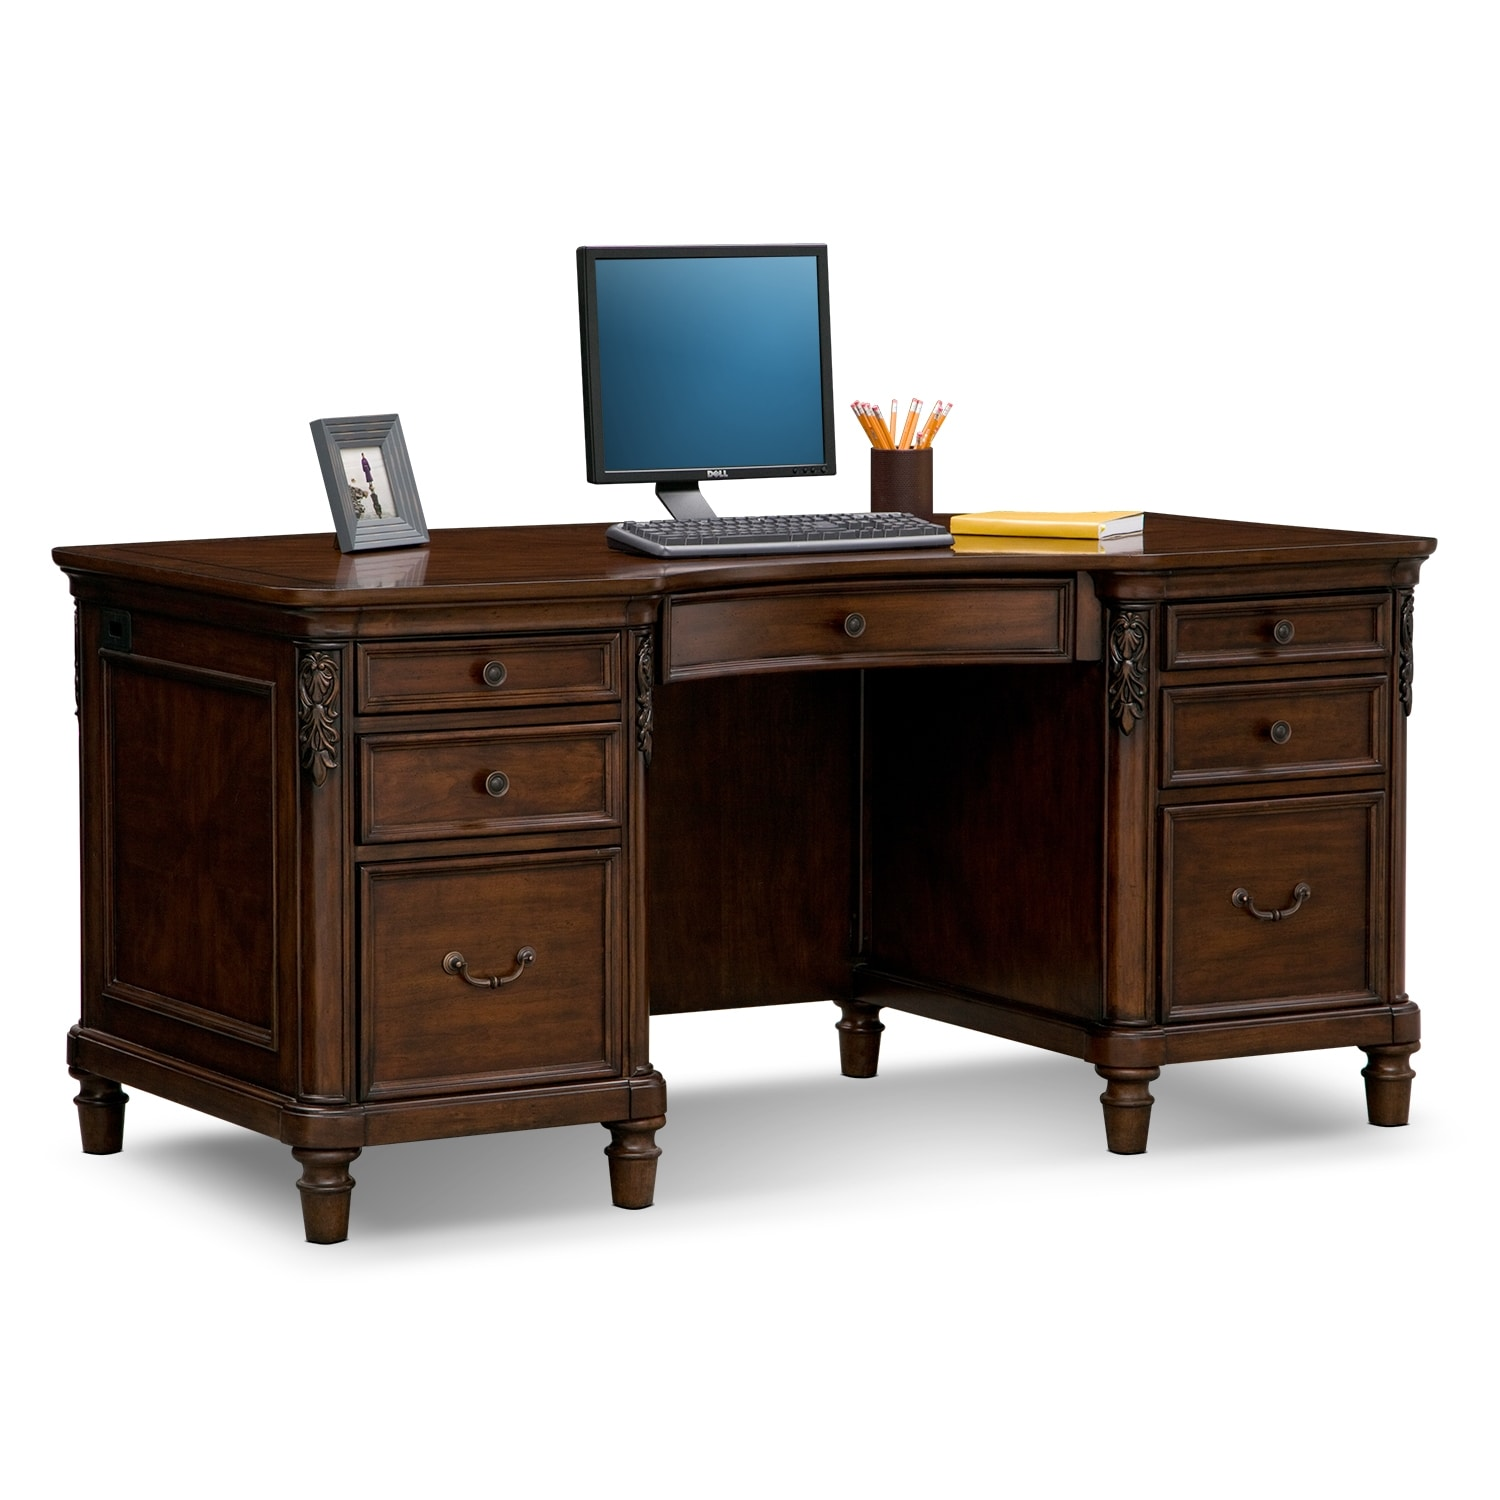 Executive Office Furniture: Ashland Executive Desk - Cherry